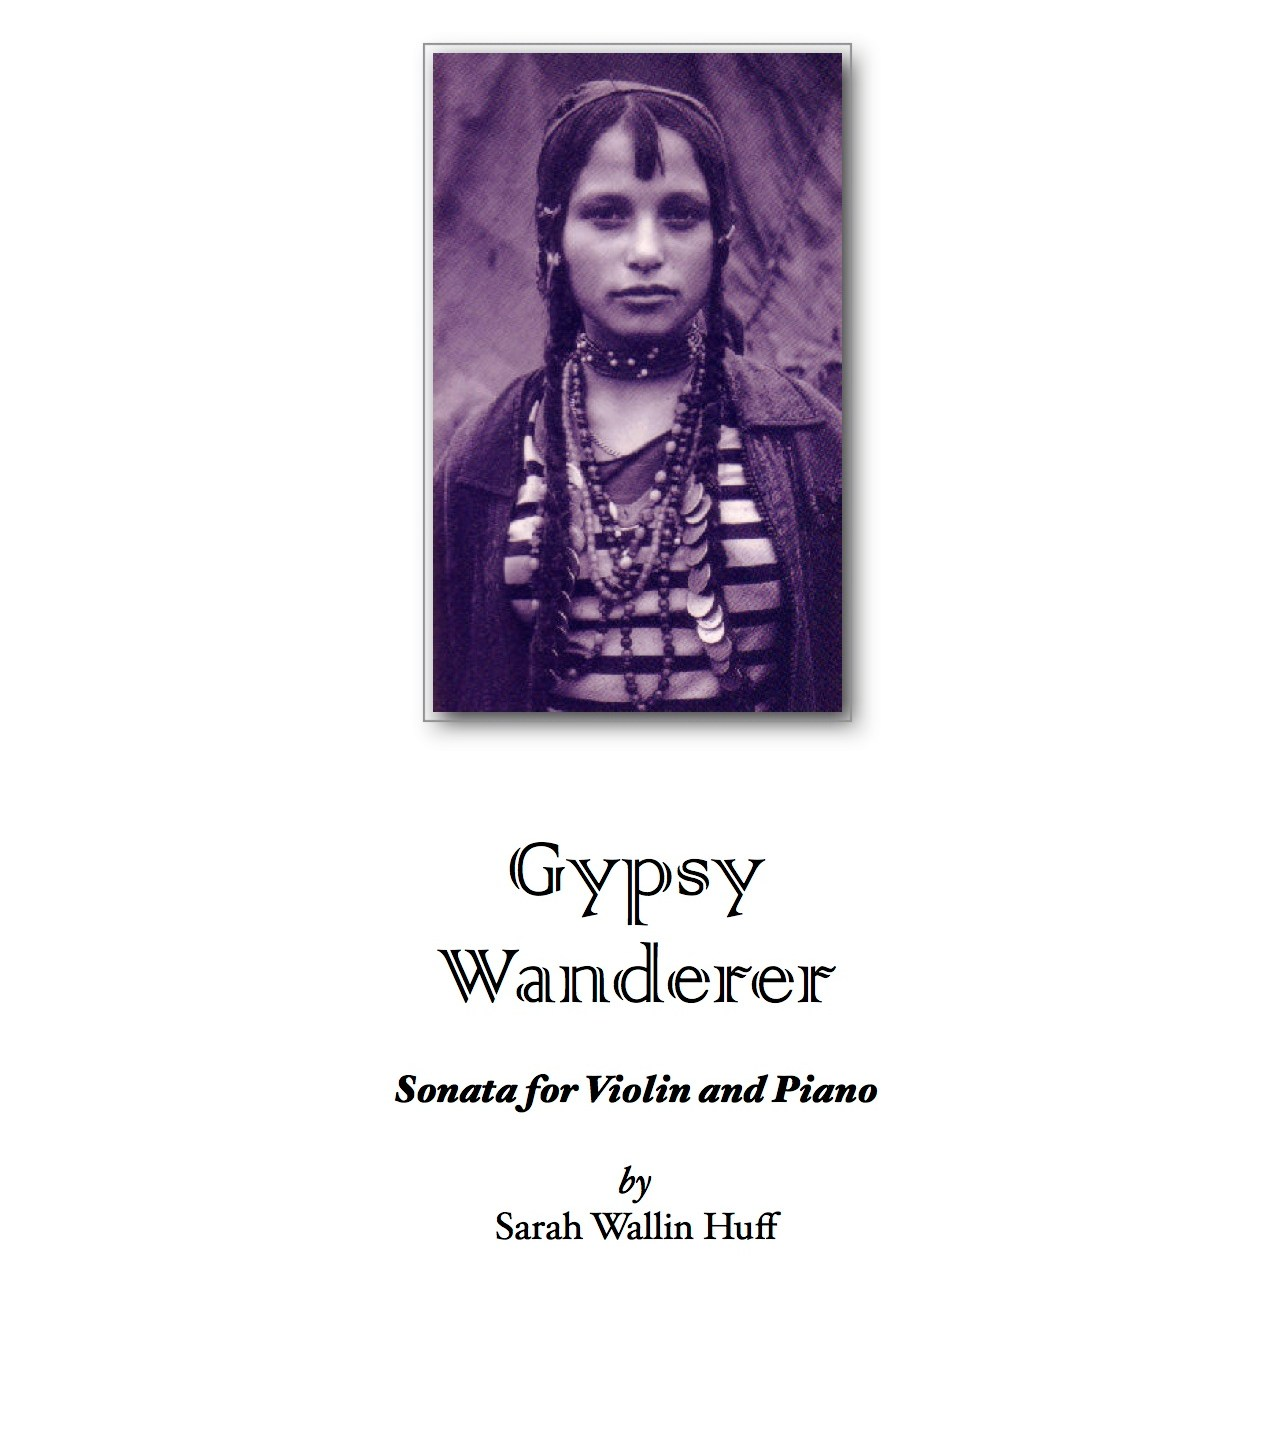 Live Performance of Gypsy Wanderer